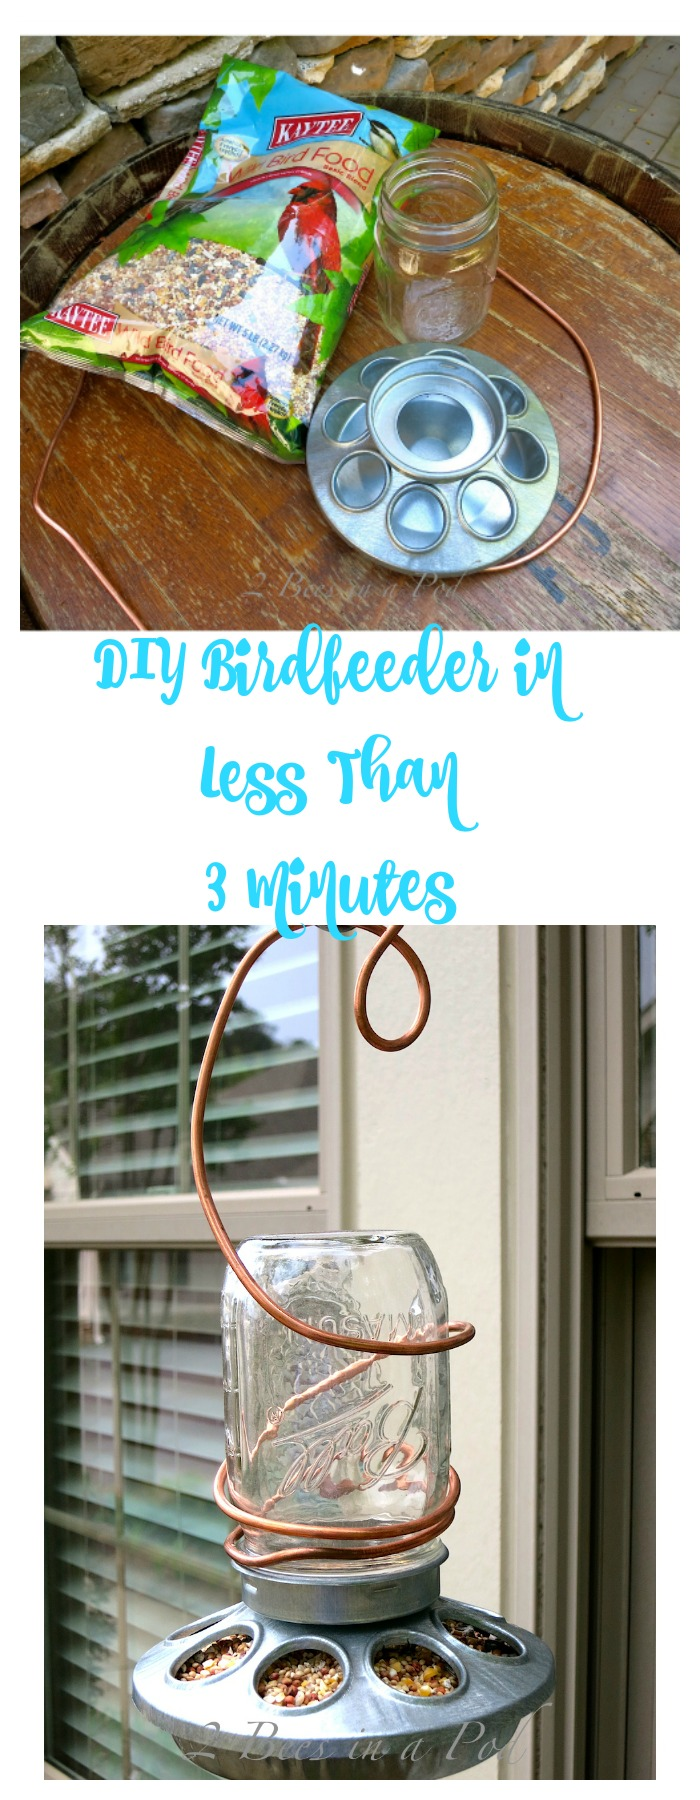 DIY Birdfeeder in less than 3 minutes